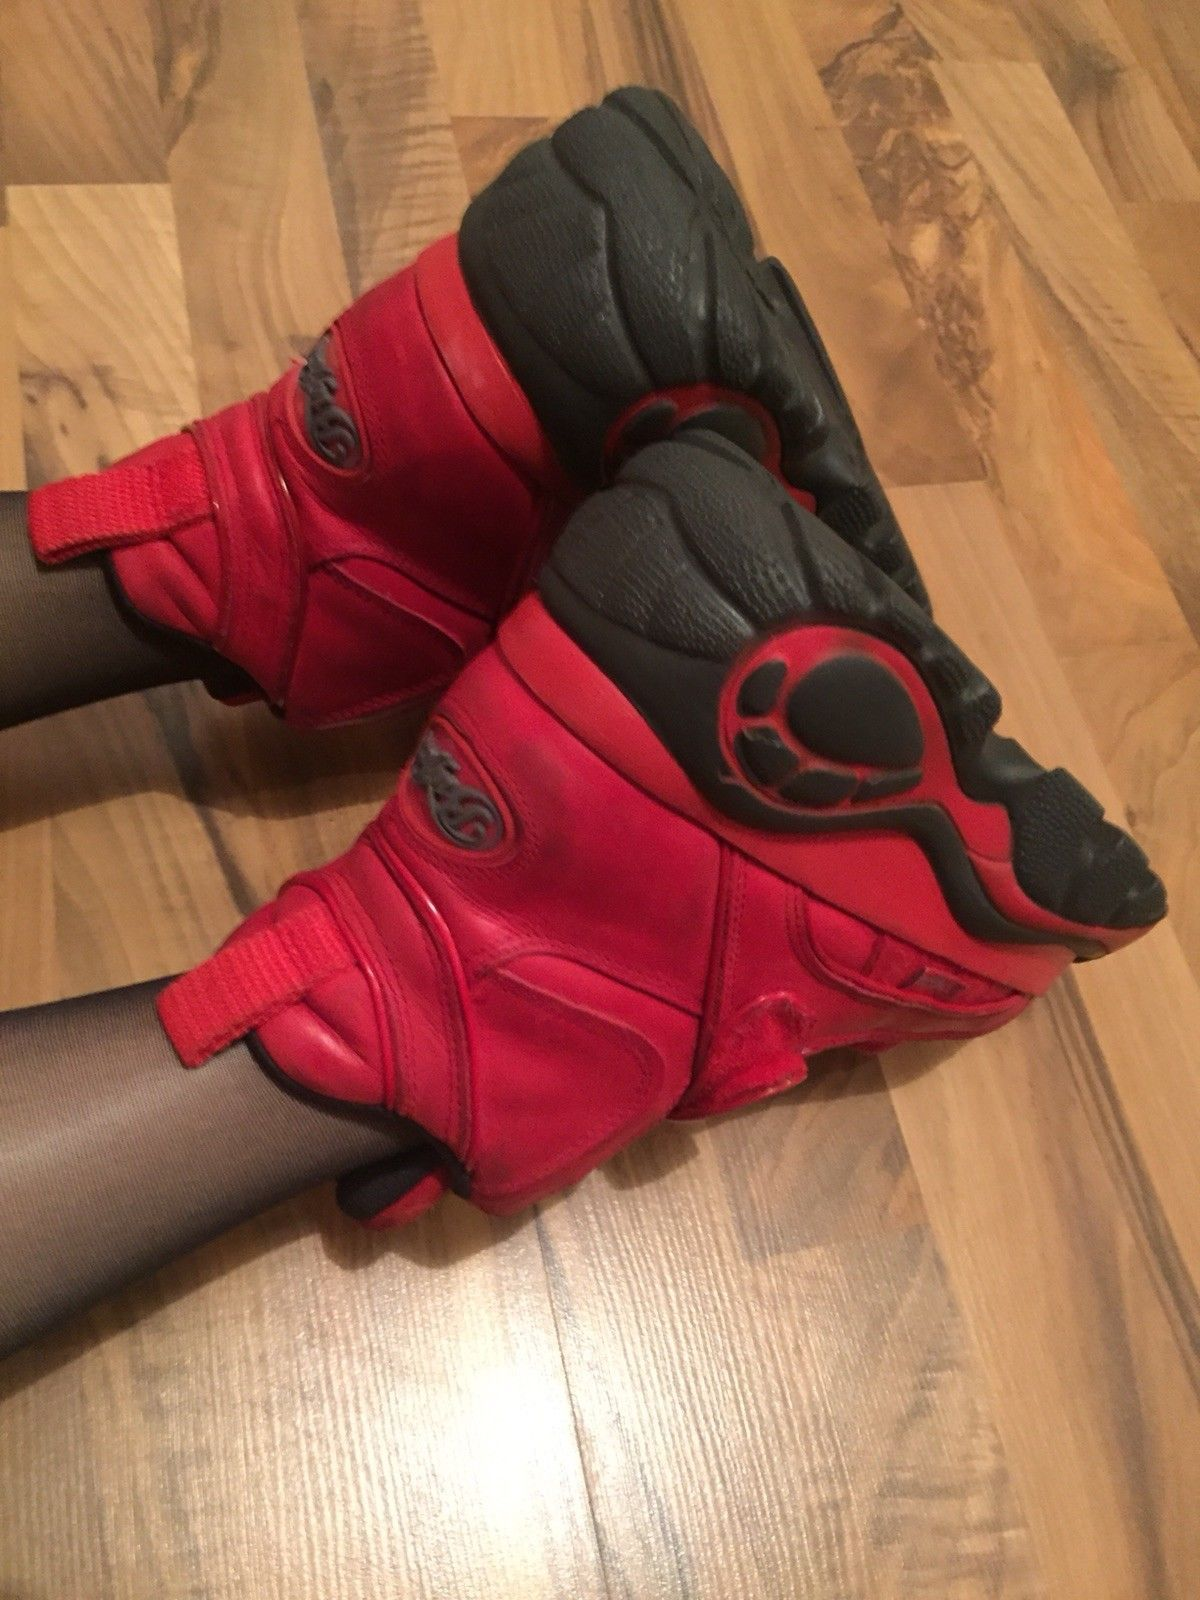 Rote 90er Buffalo Classic Plateau Boots Tower Techno Rave Kleidung